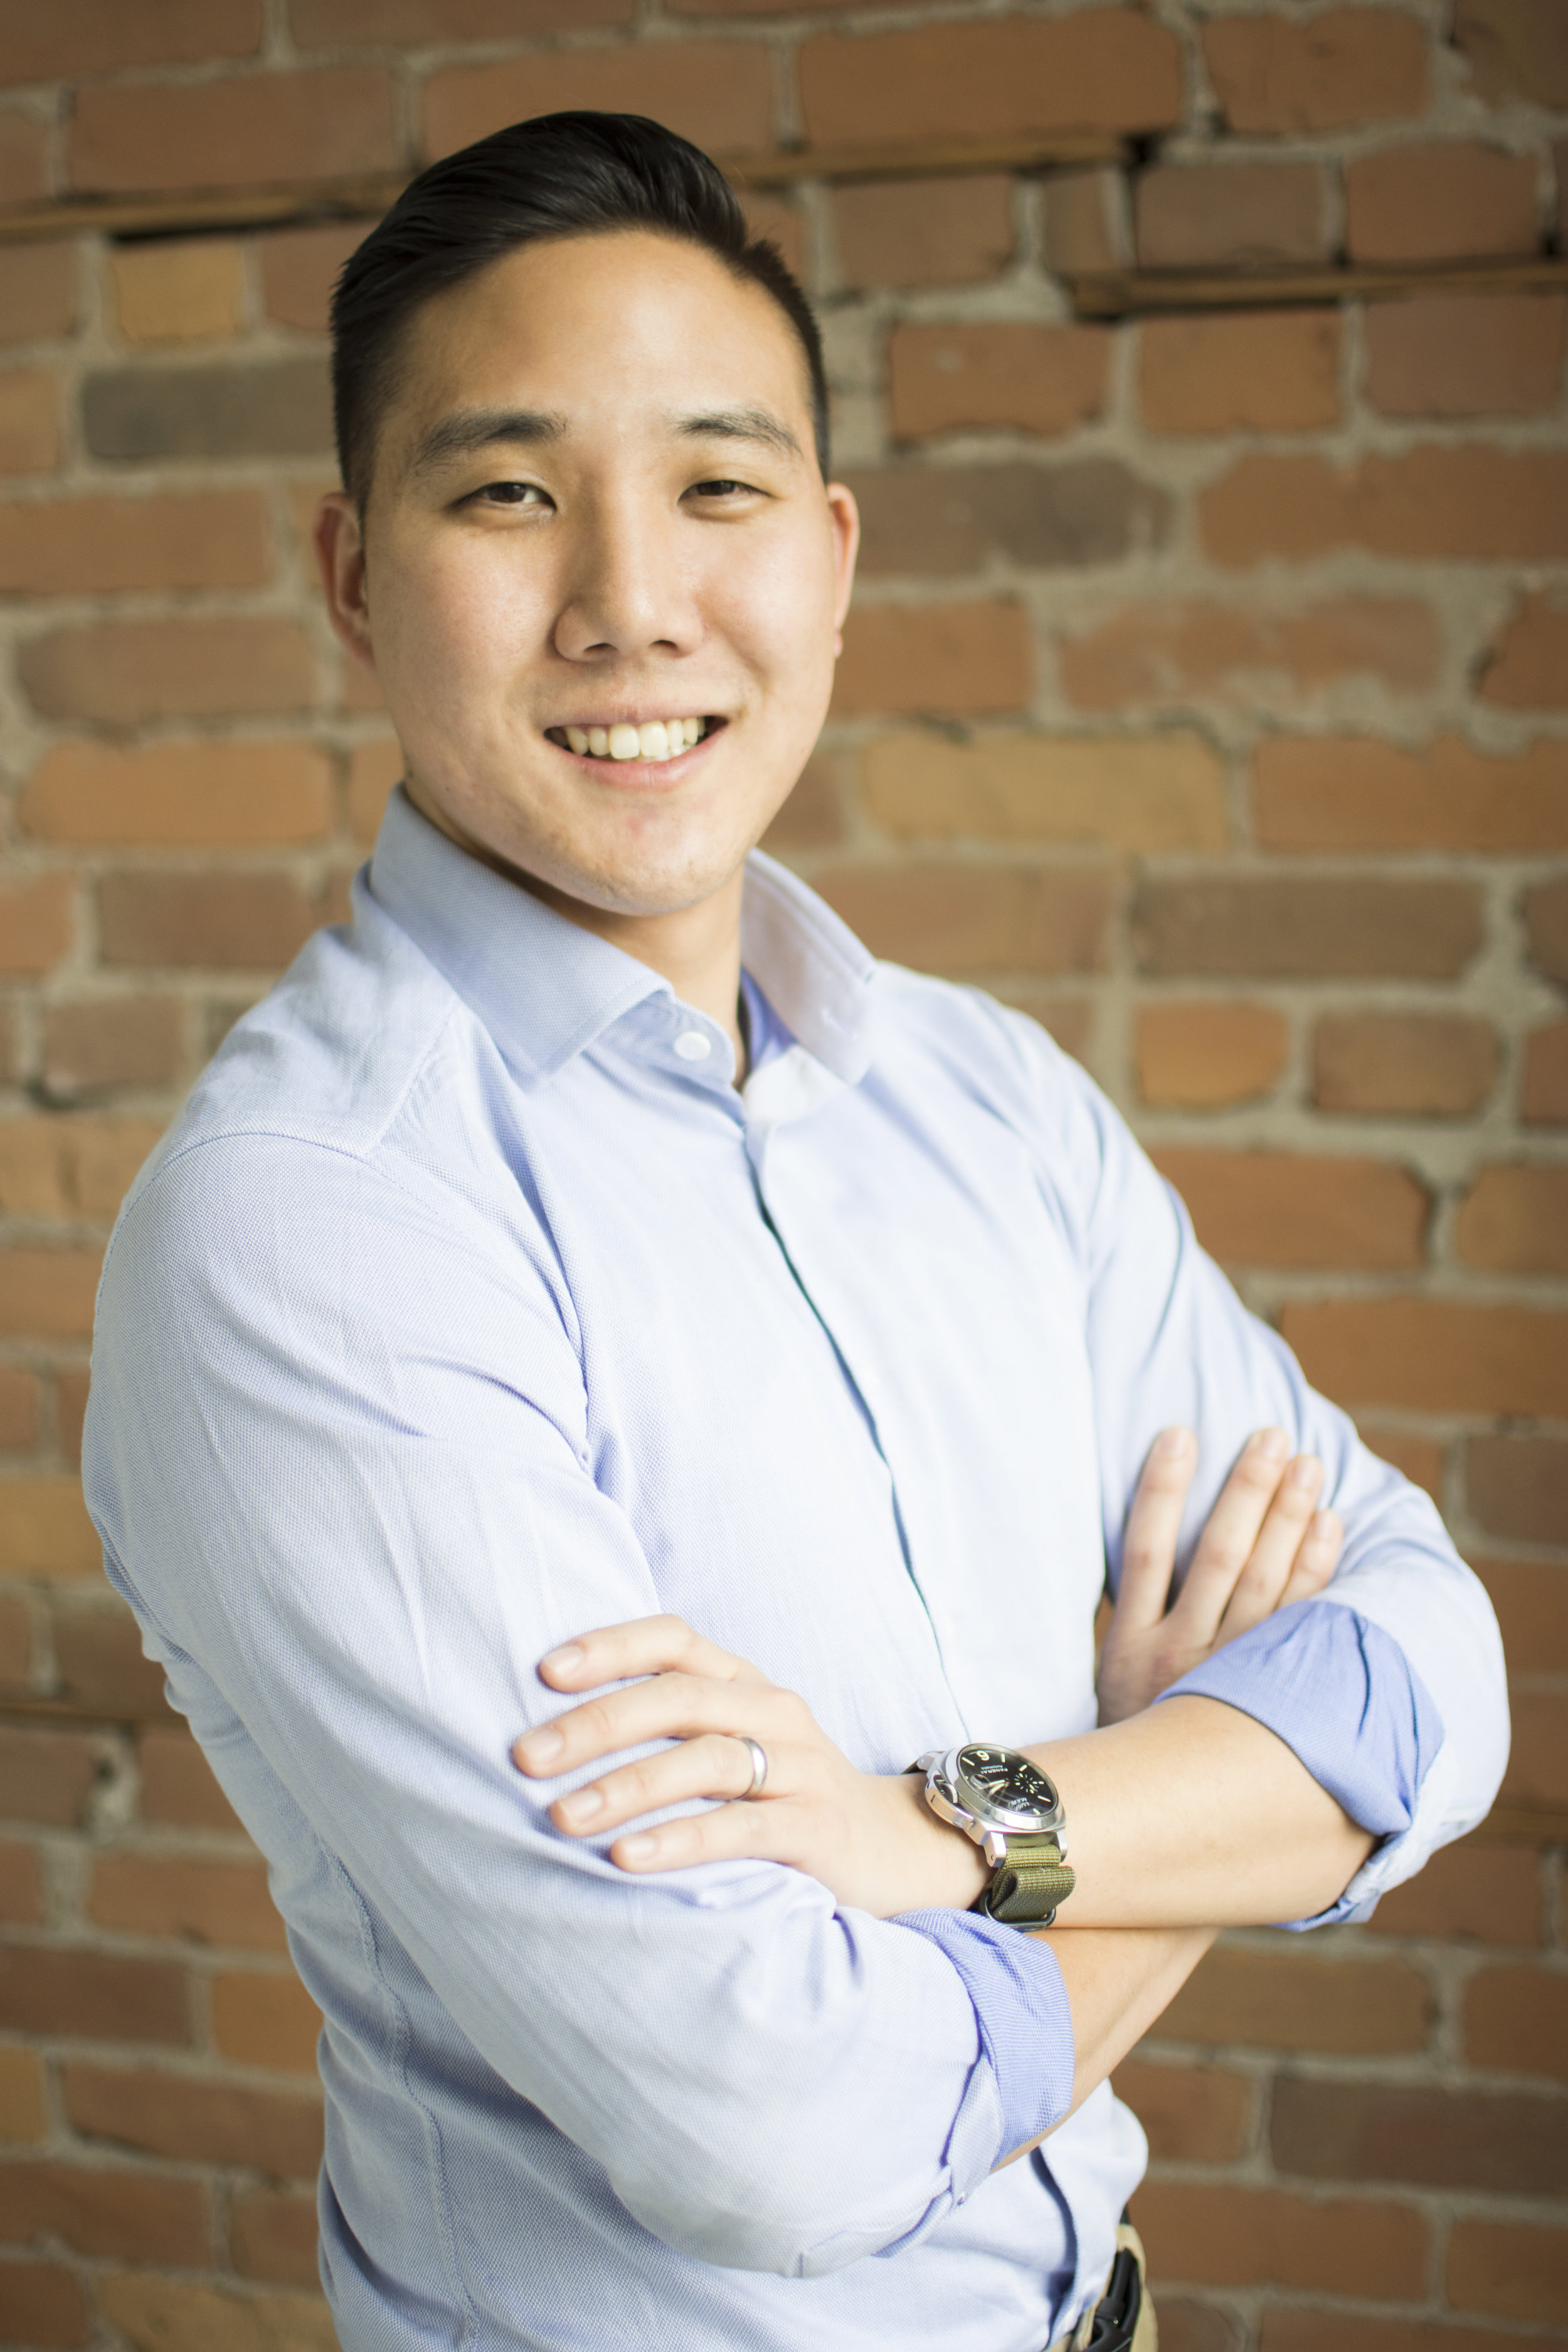 Nathan soohoo - Former Business Development Manager, Trulioo: Global Identity Verification, now at Facebook